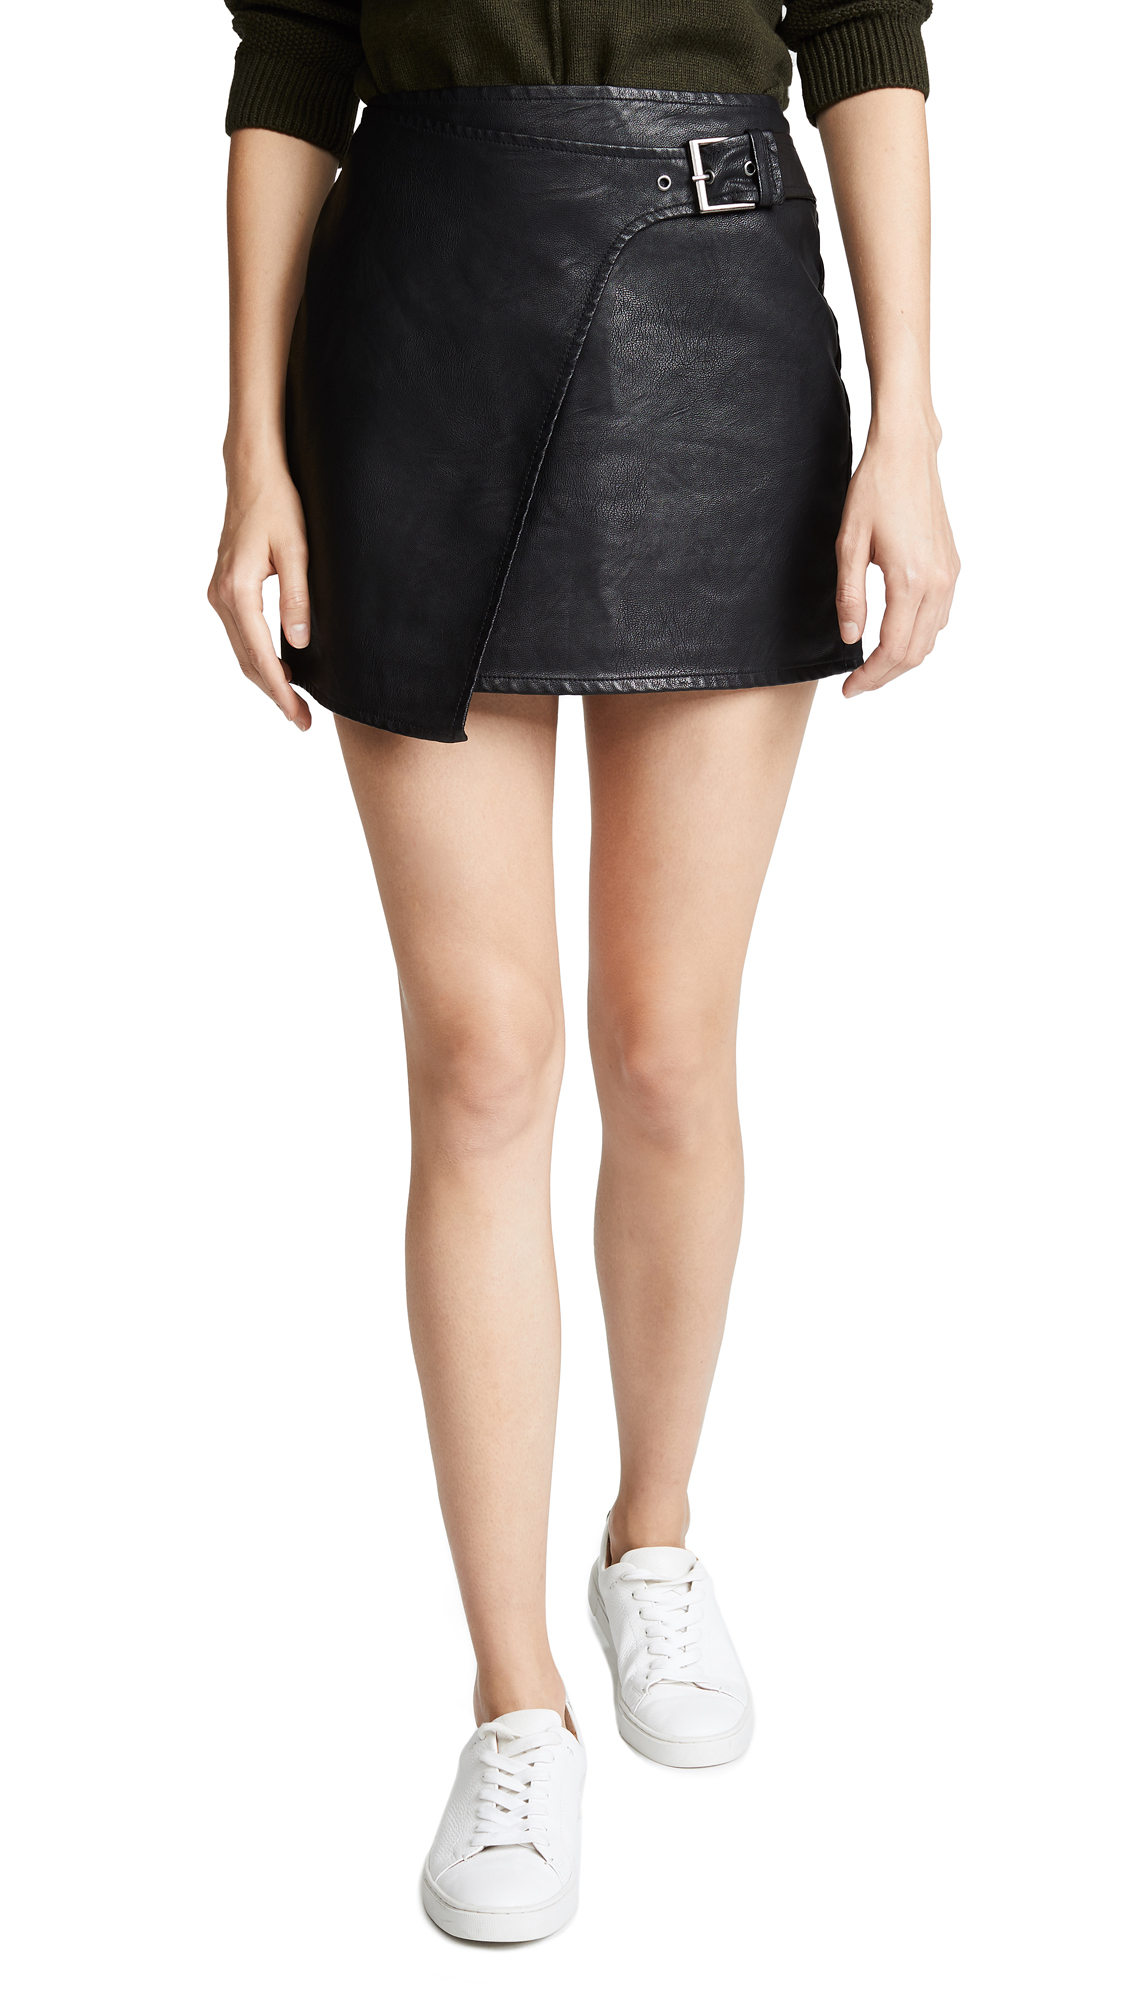 BB Dakota Jack by BB Dakota Fashion Killa Skirt In Black